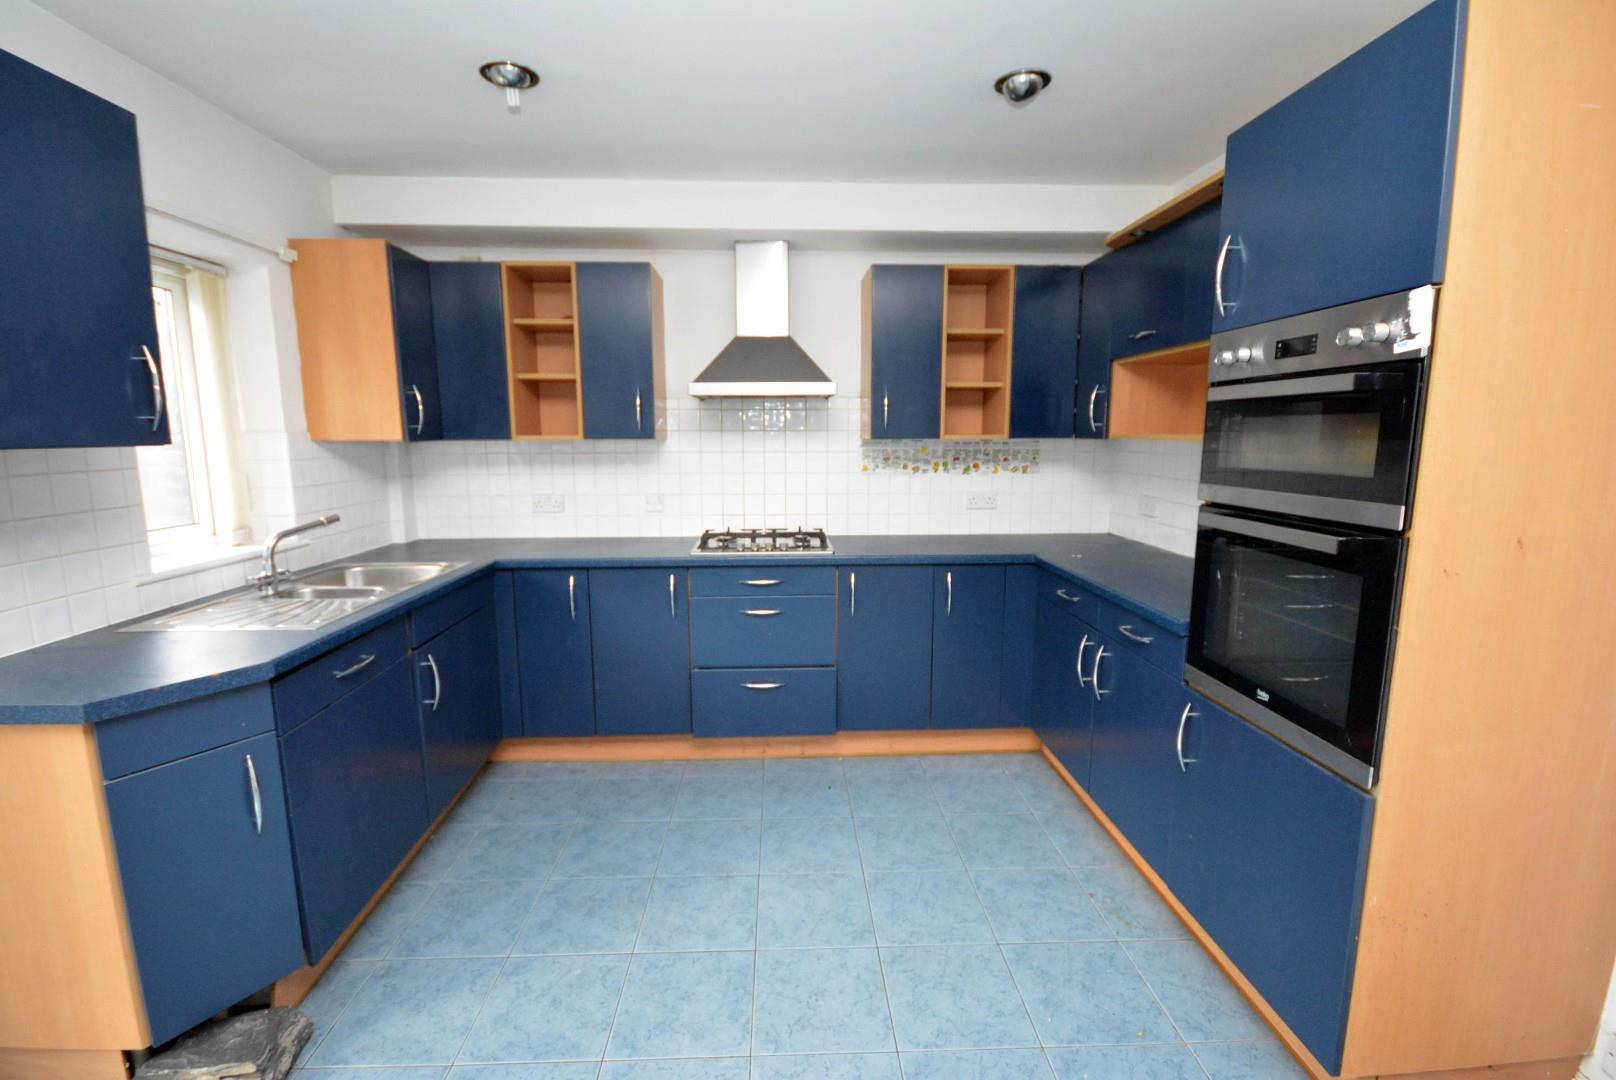 3 bed town house for sale in Adventurers Quay, Cardiff, CF10